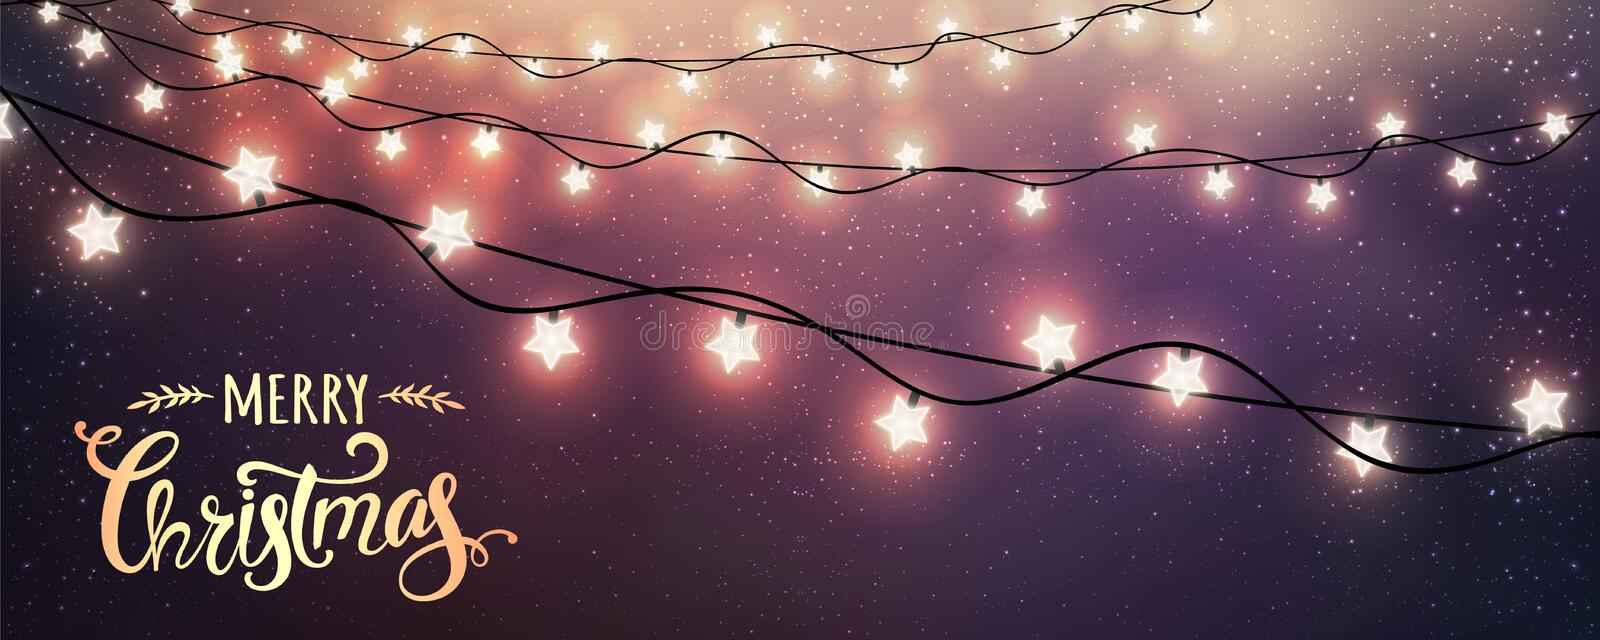 Merry Christmas Typographical on dark background with Xmas decorations glowing white garlands, light, stars. Christmas theme. Vector Illustration royalty free illustration